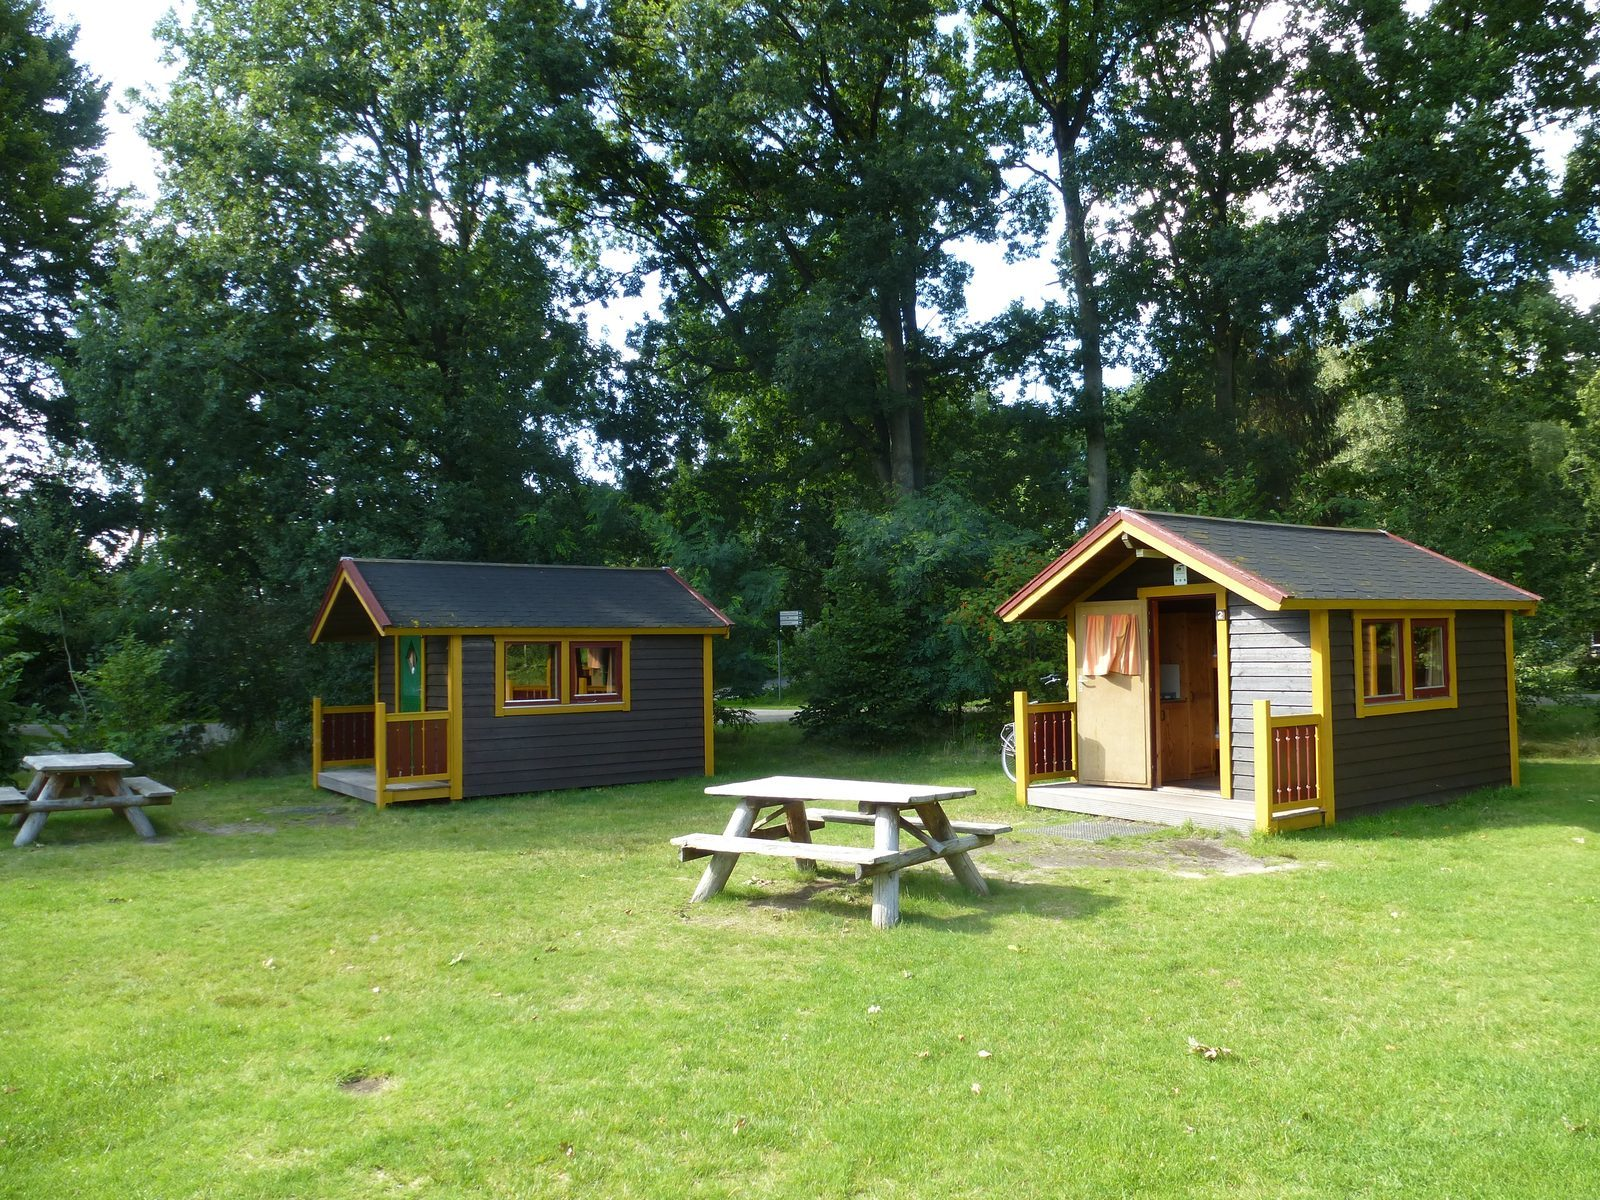 Hikers' Cabins - Witterzomer Drenthe